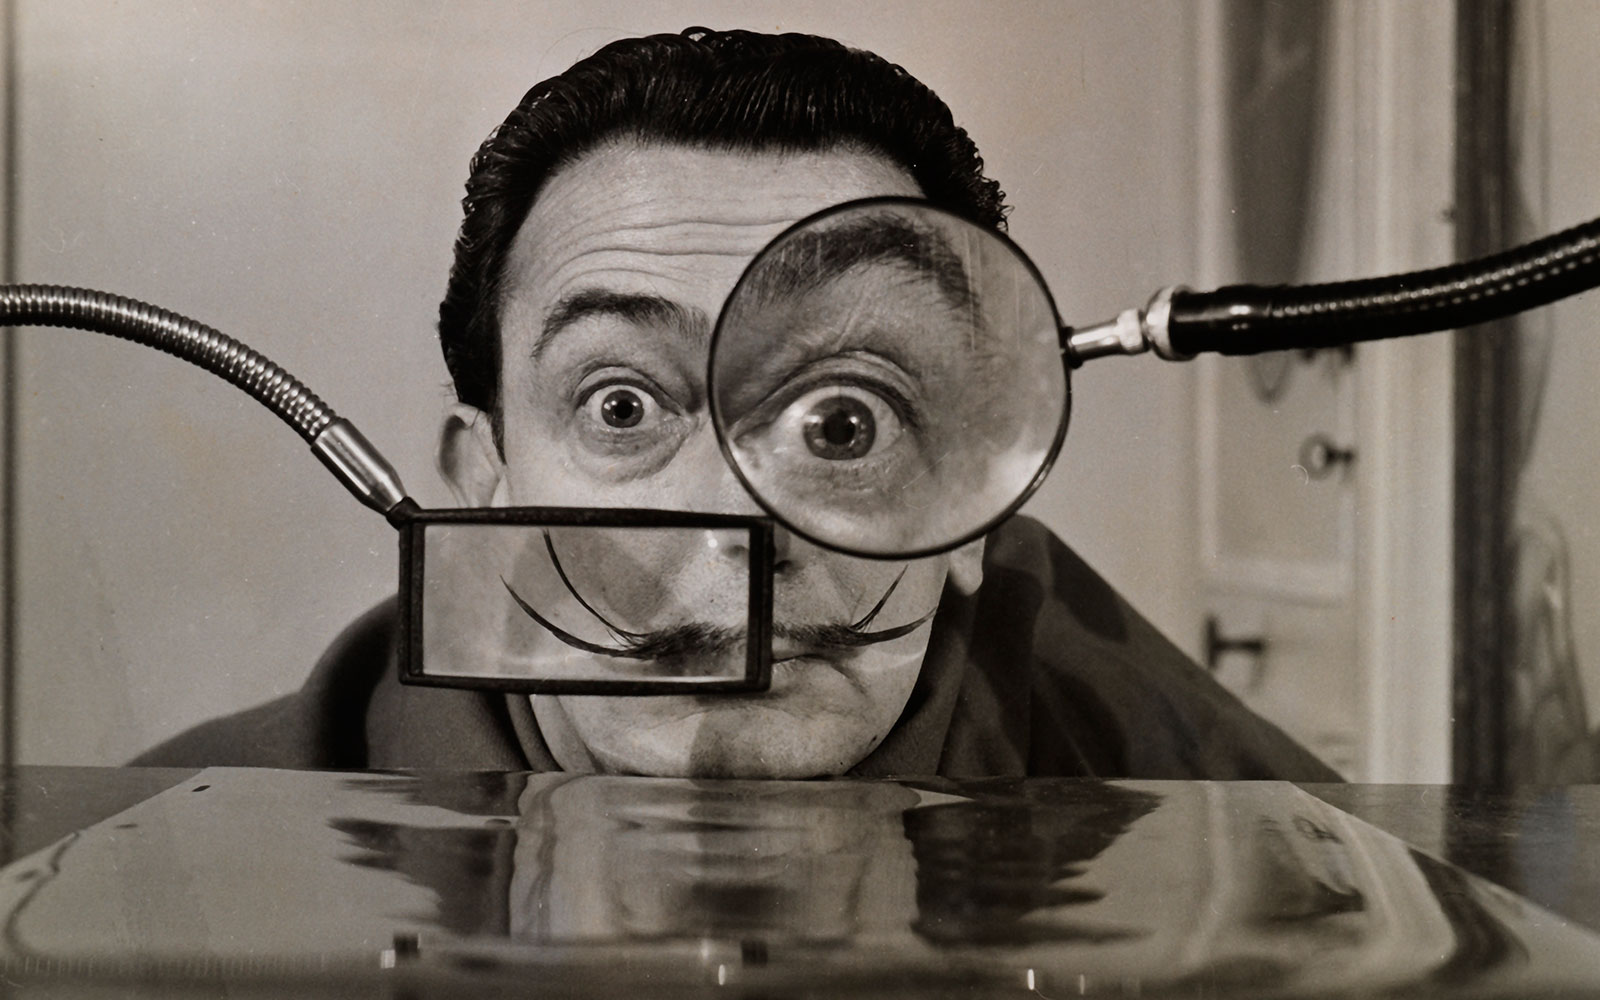 Willy Rizzo photograph of Salvador Dalí.